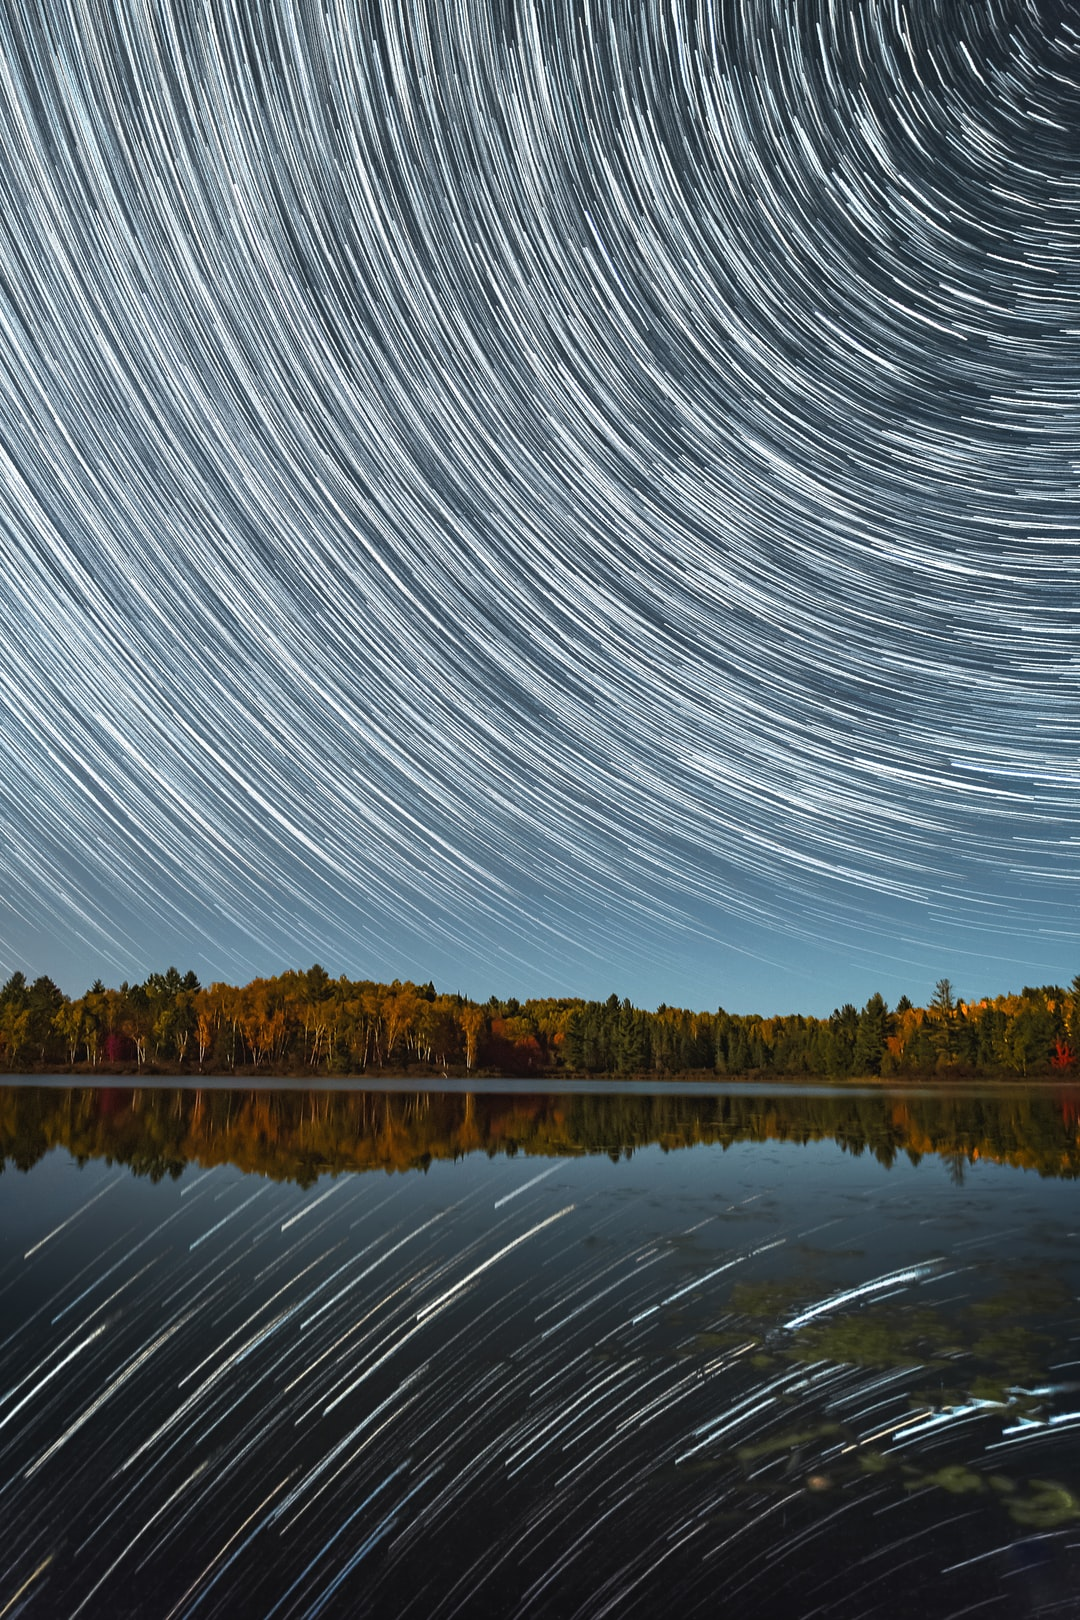 Star trails and reflections over a lake during fall with colourful trees